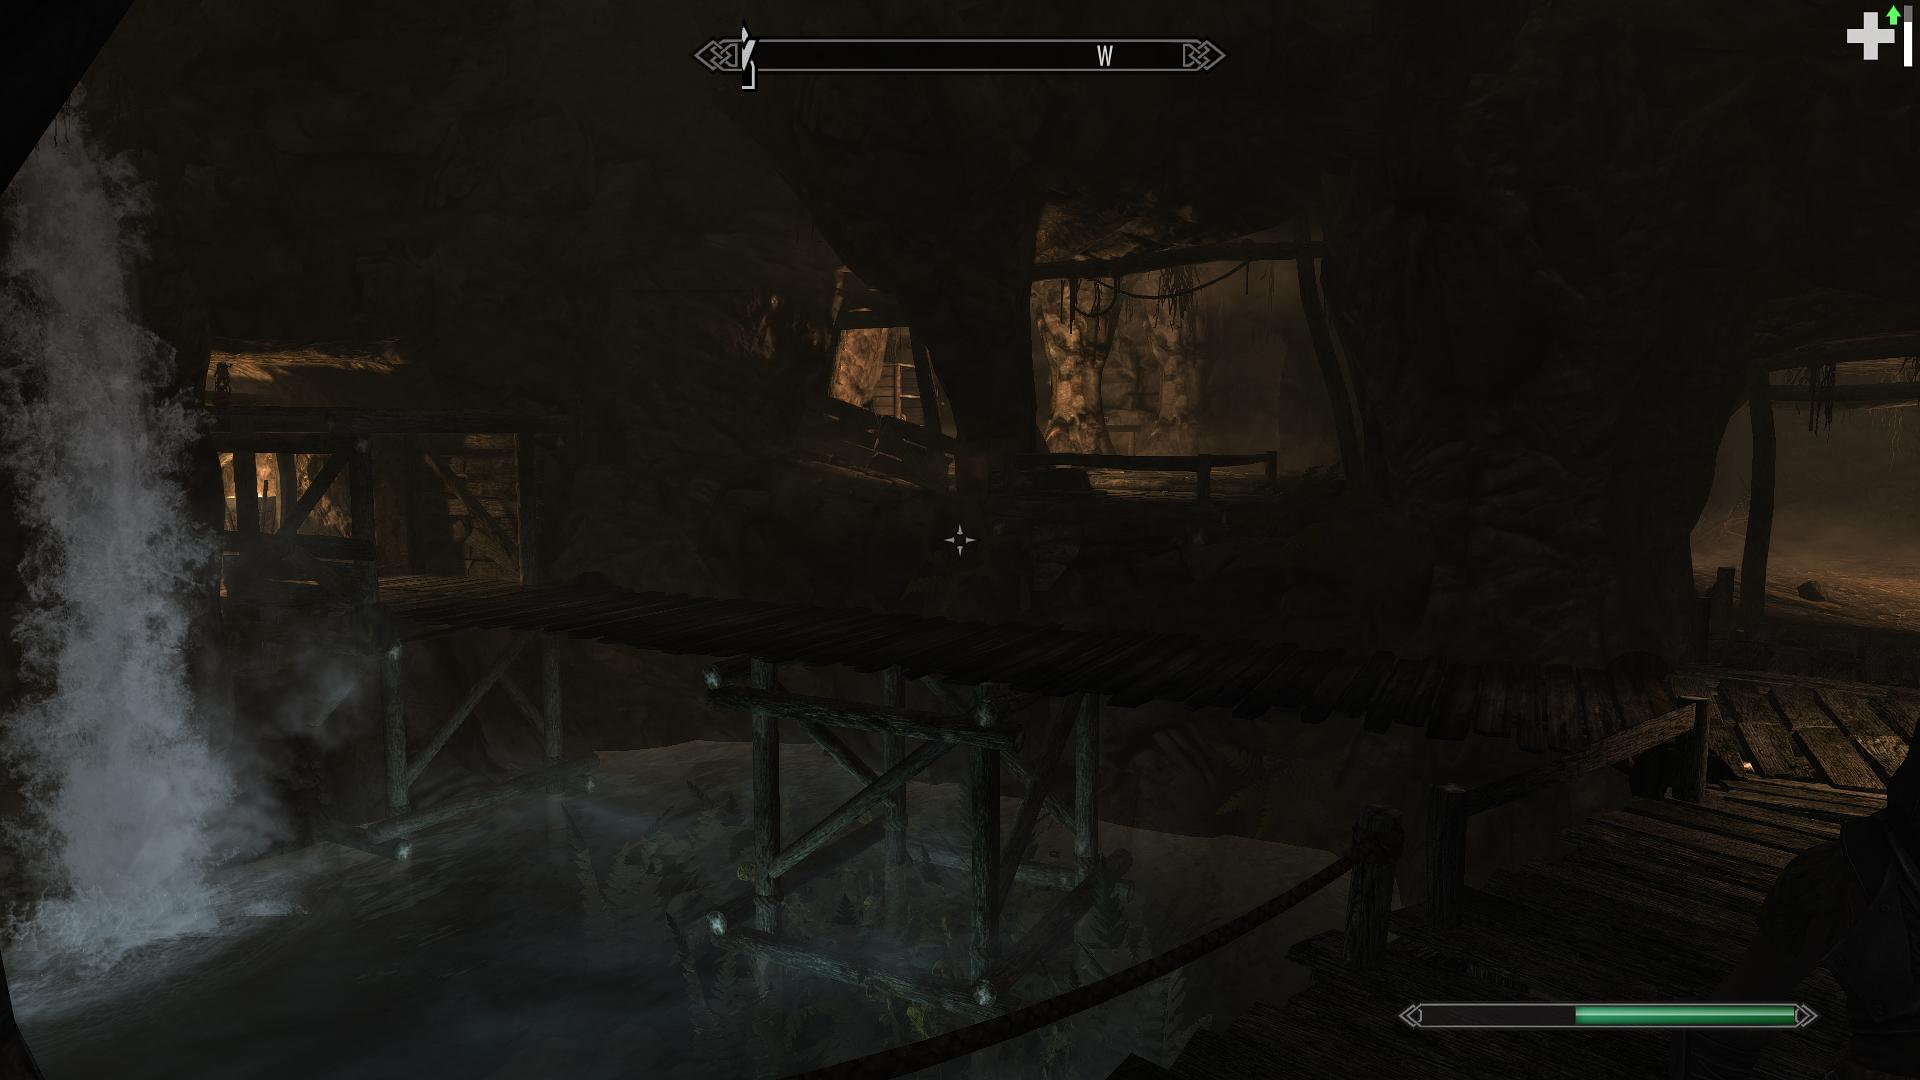 modding skyrim anandtech forums technology hardware software